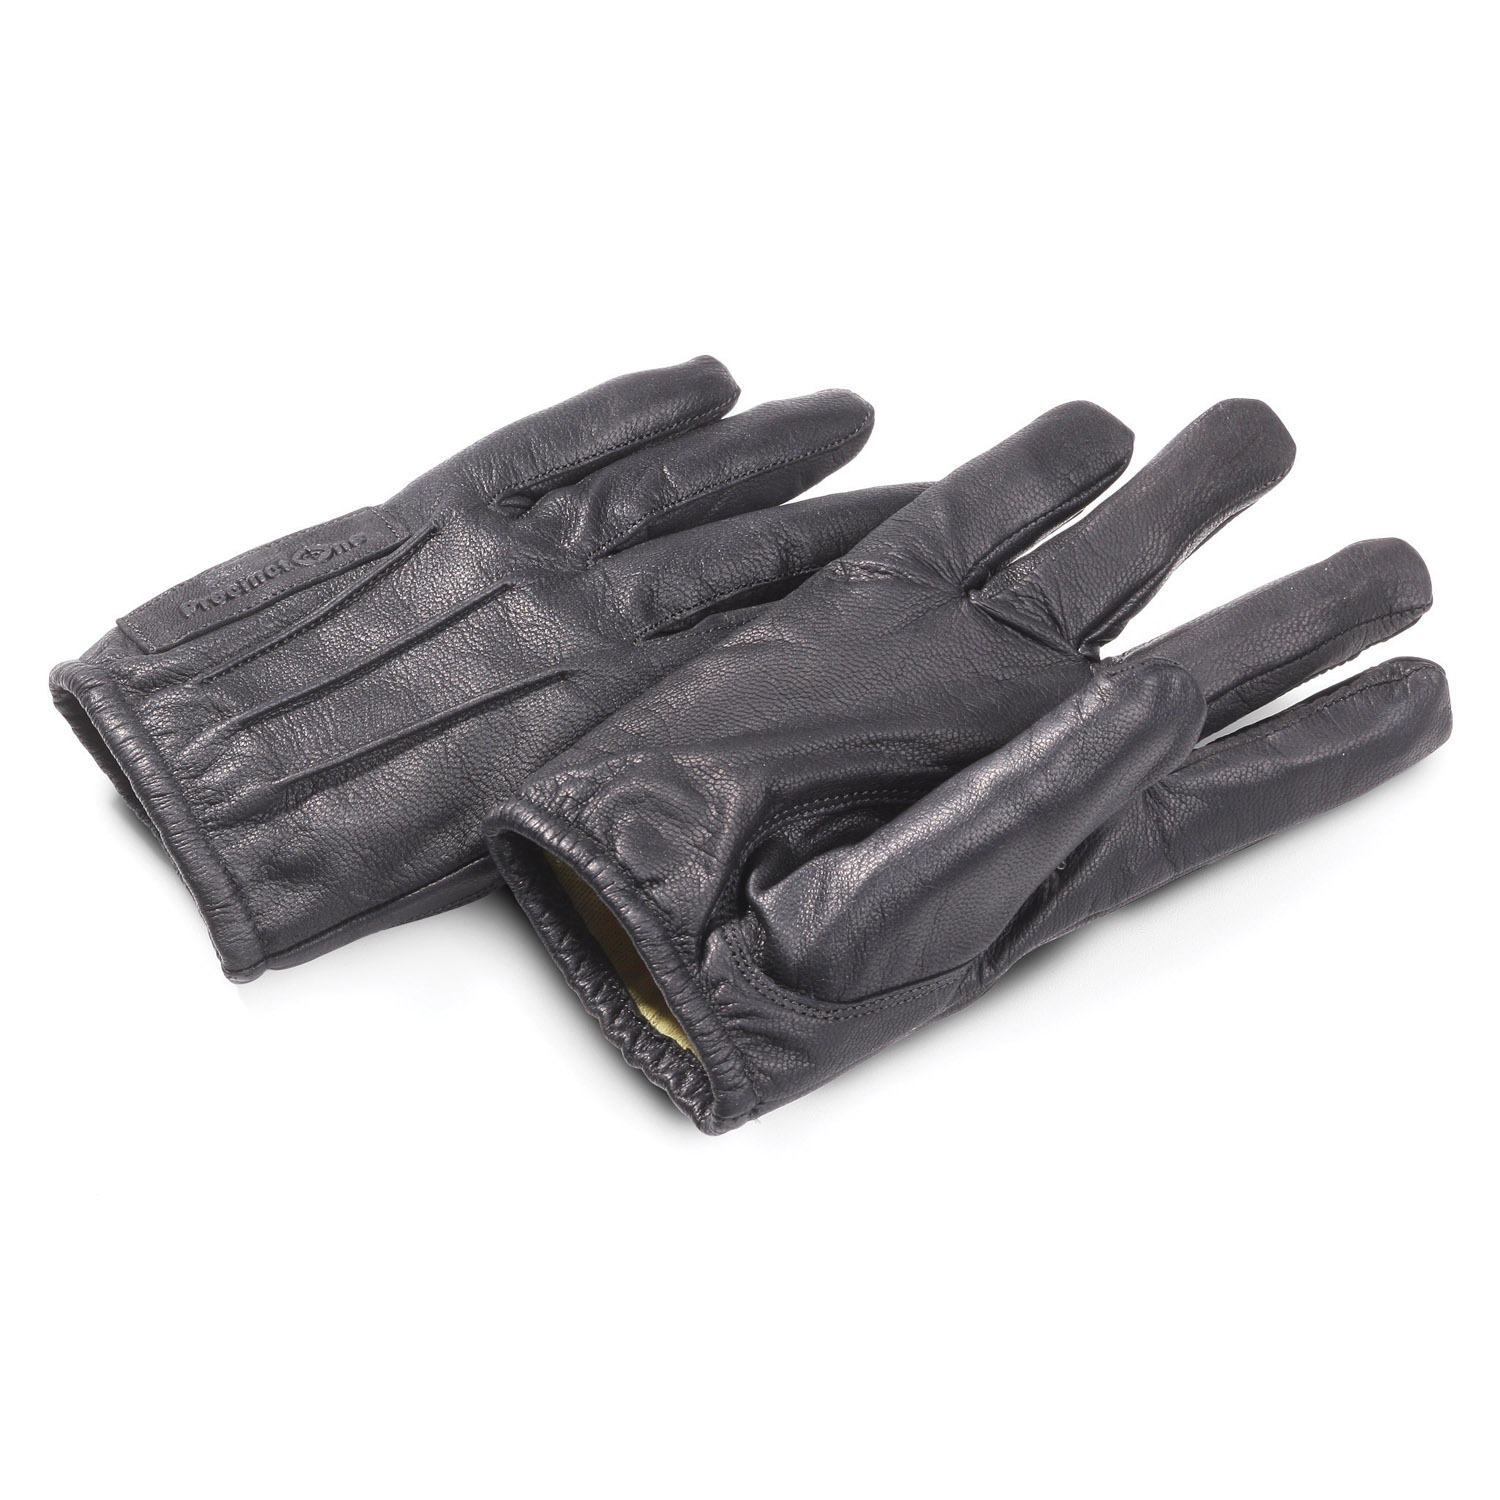 Precinct One Women's Waterproof Leather Duty Gloves